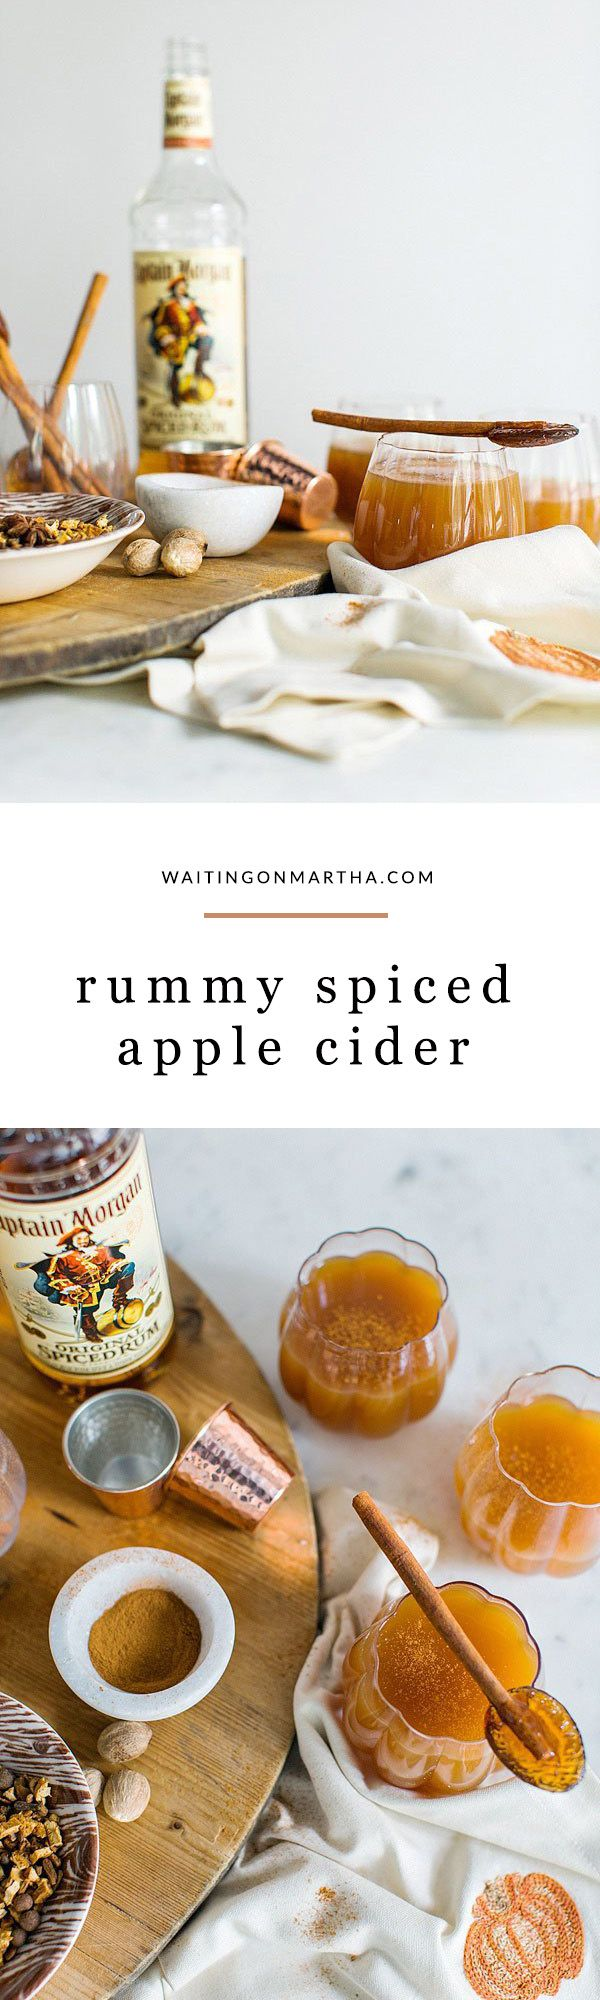 Rum spiced apple cider cocktail recipe by @waitingonmartha